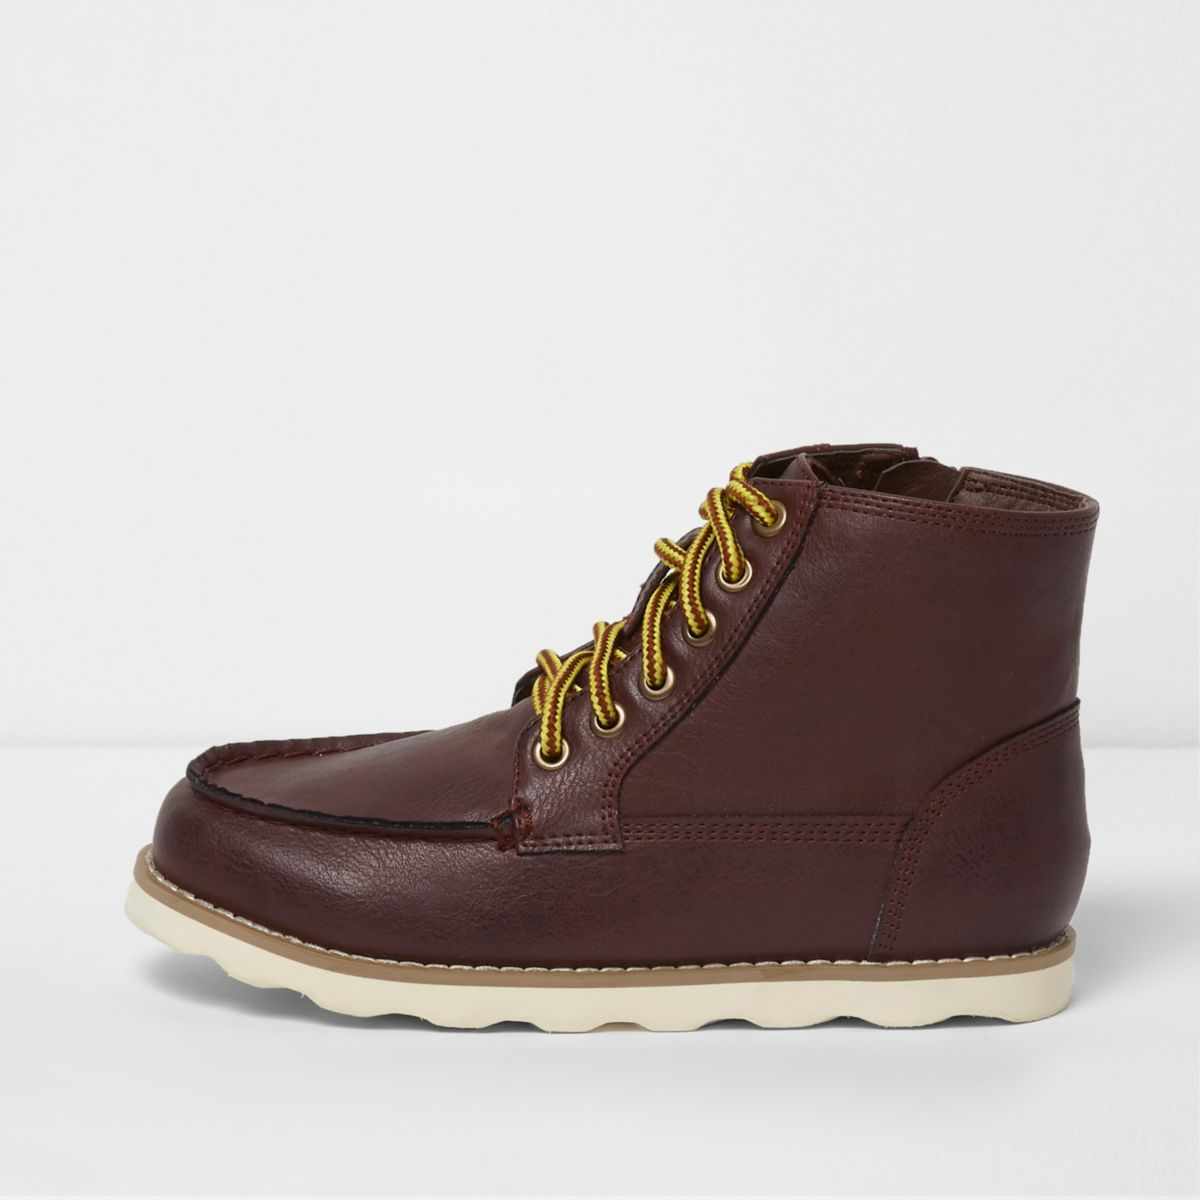 Boys red apron toe hiking boots